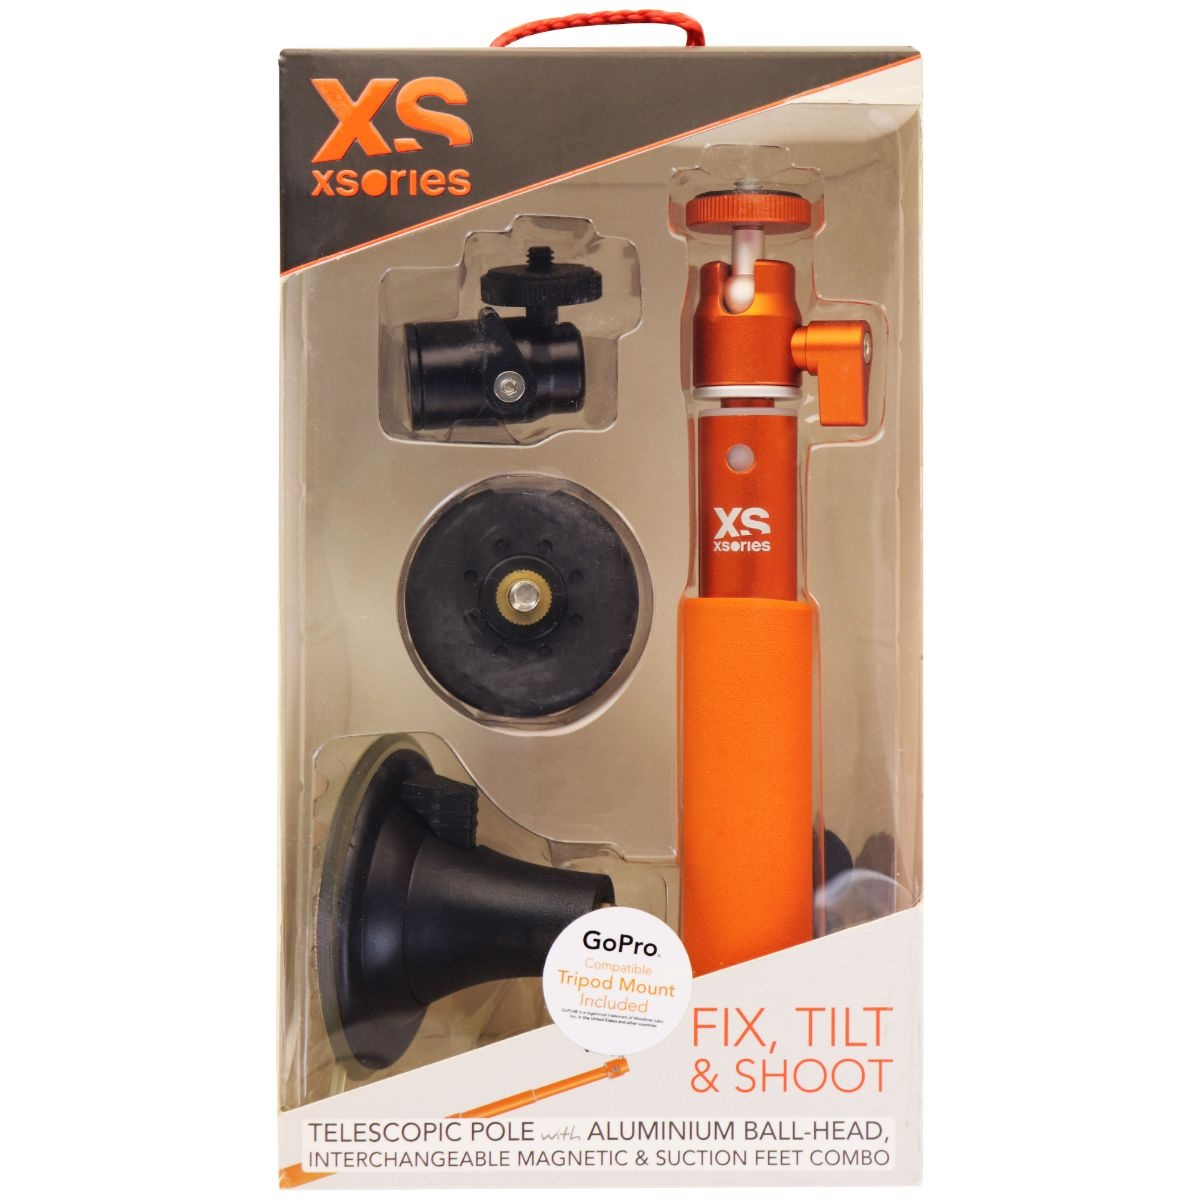 XSories Fix, Tilt & Shoot Kit with Telescopic Pole & 1/4inch Ball